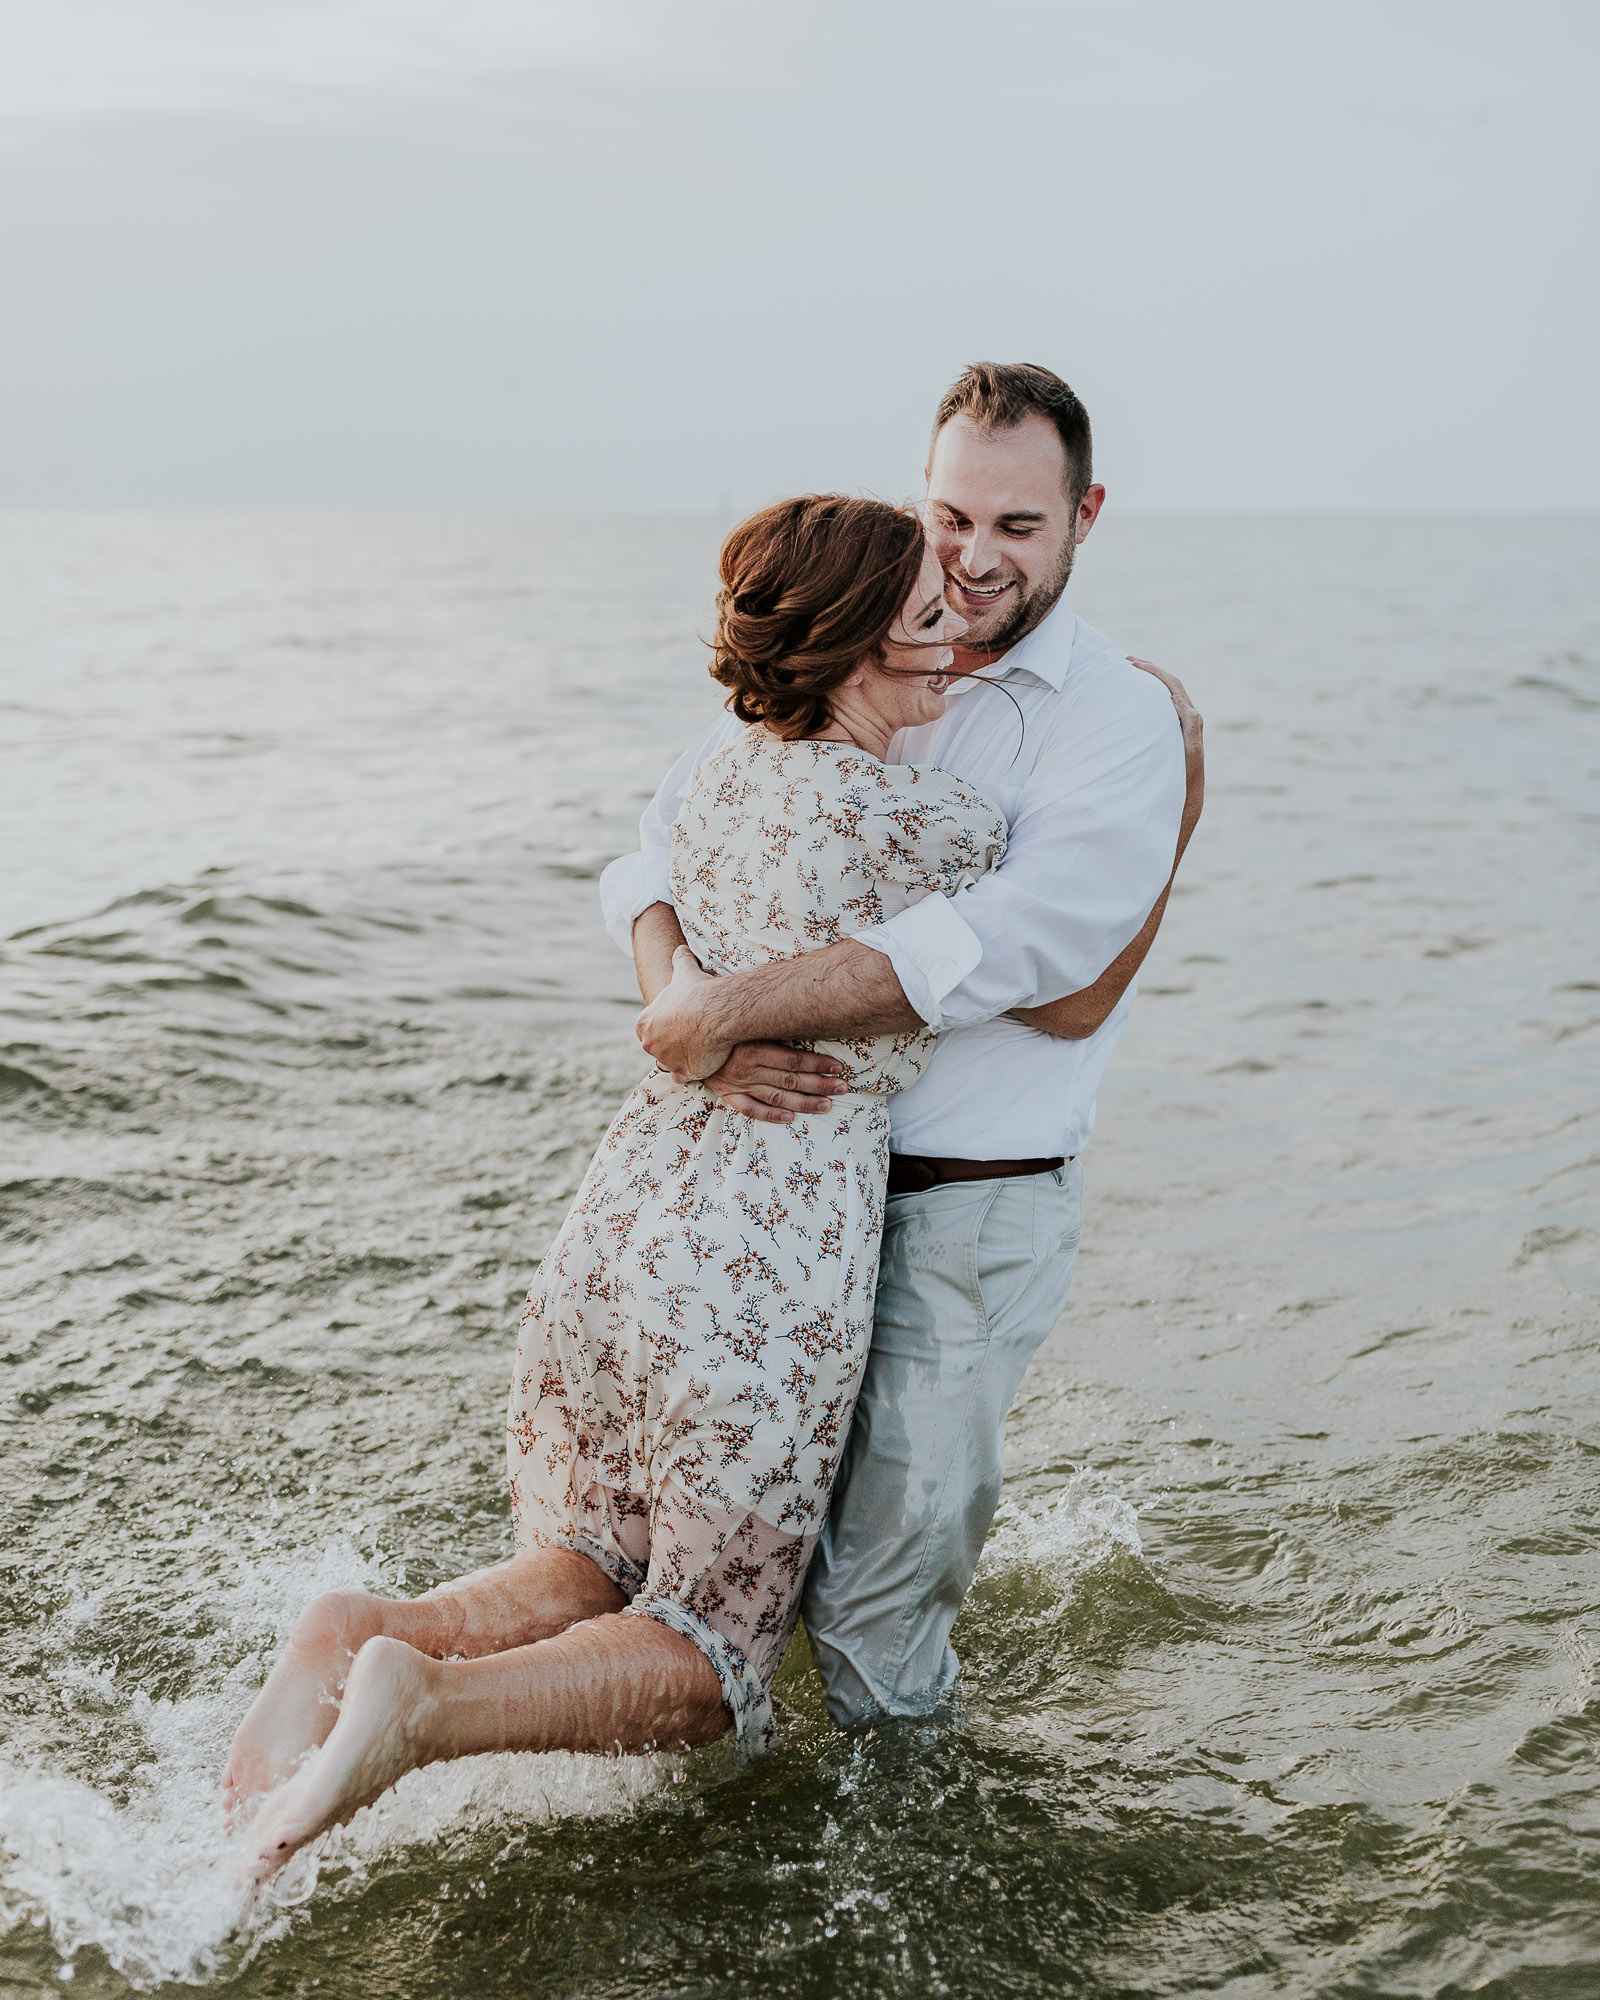 lake michigan elopement inspiration michigan wedding photographer brunch colorful